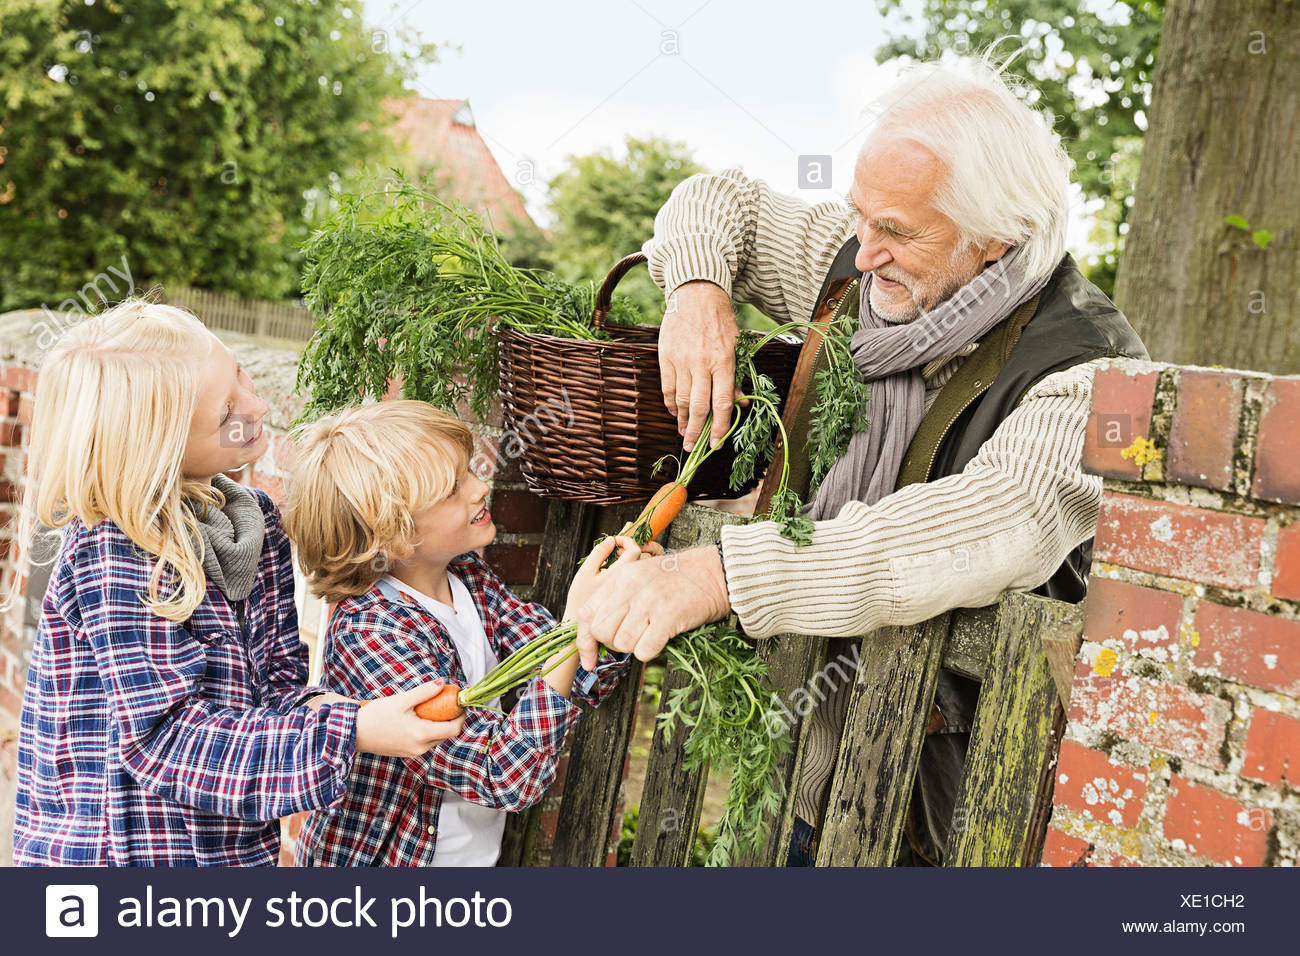 Grandfather and grandchildren by gate with carrots - Stock Image